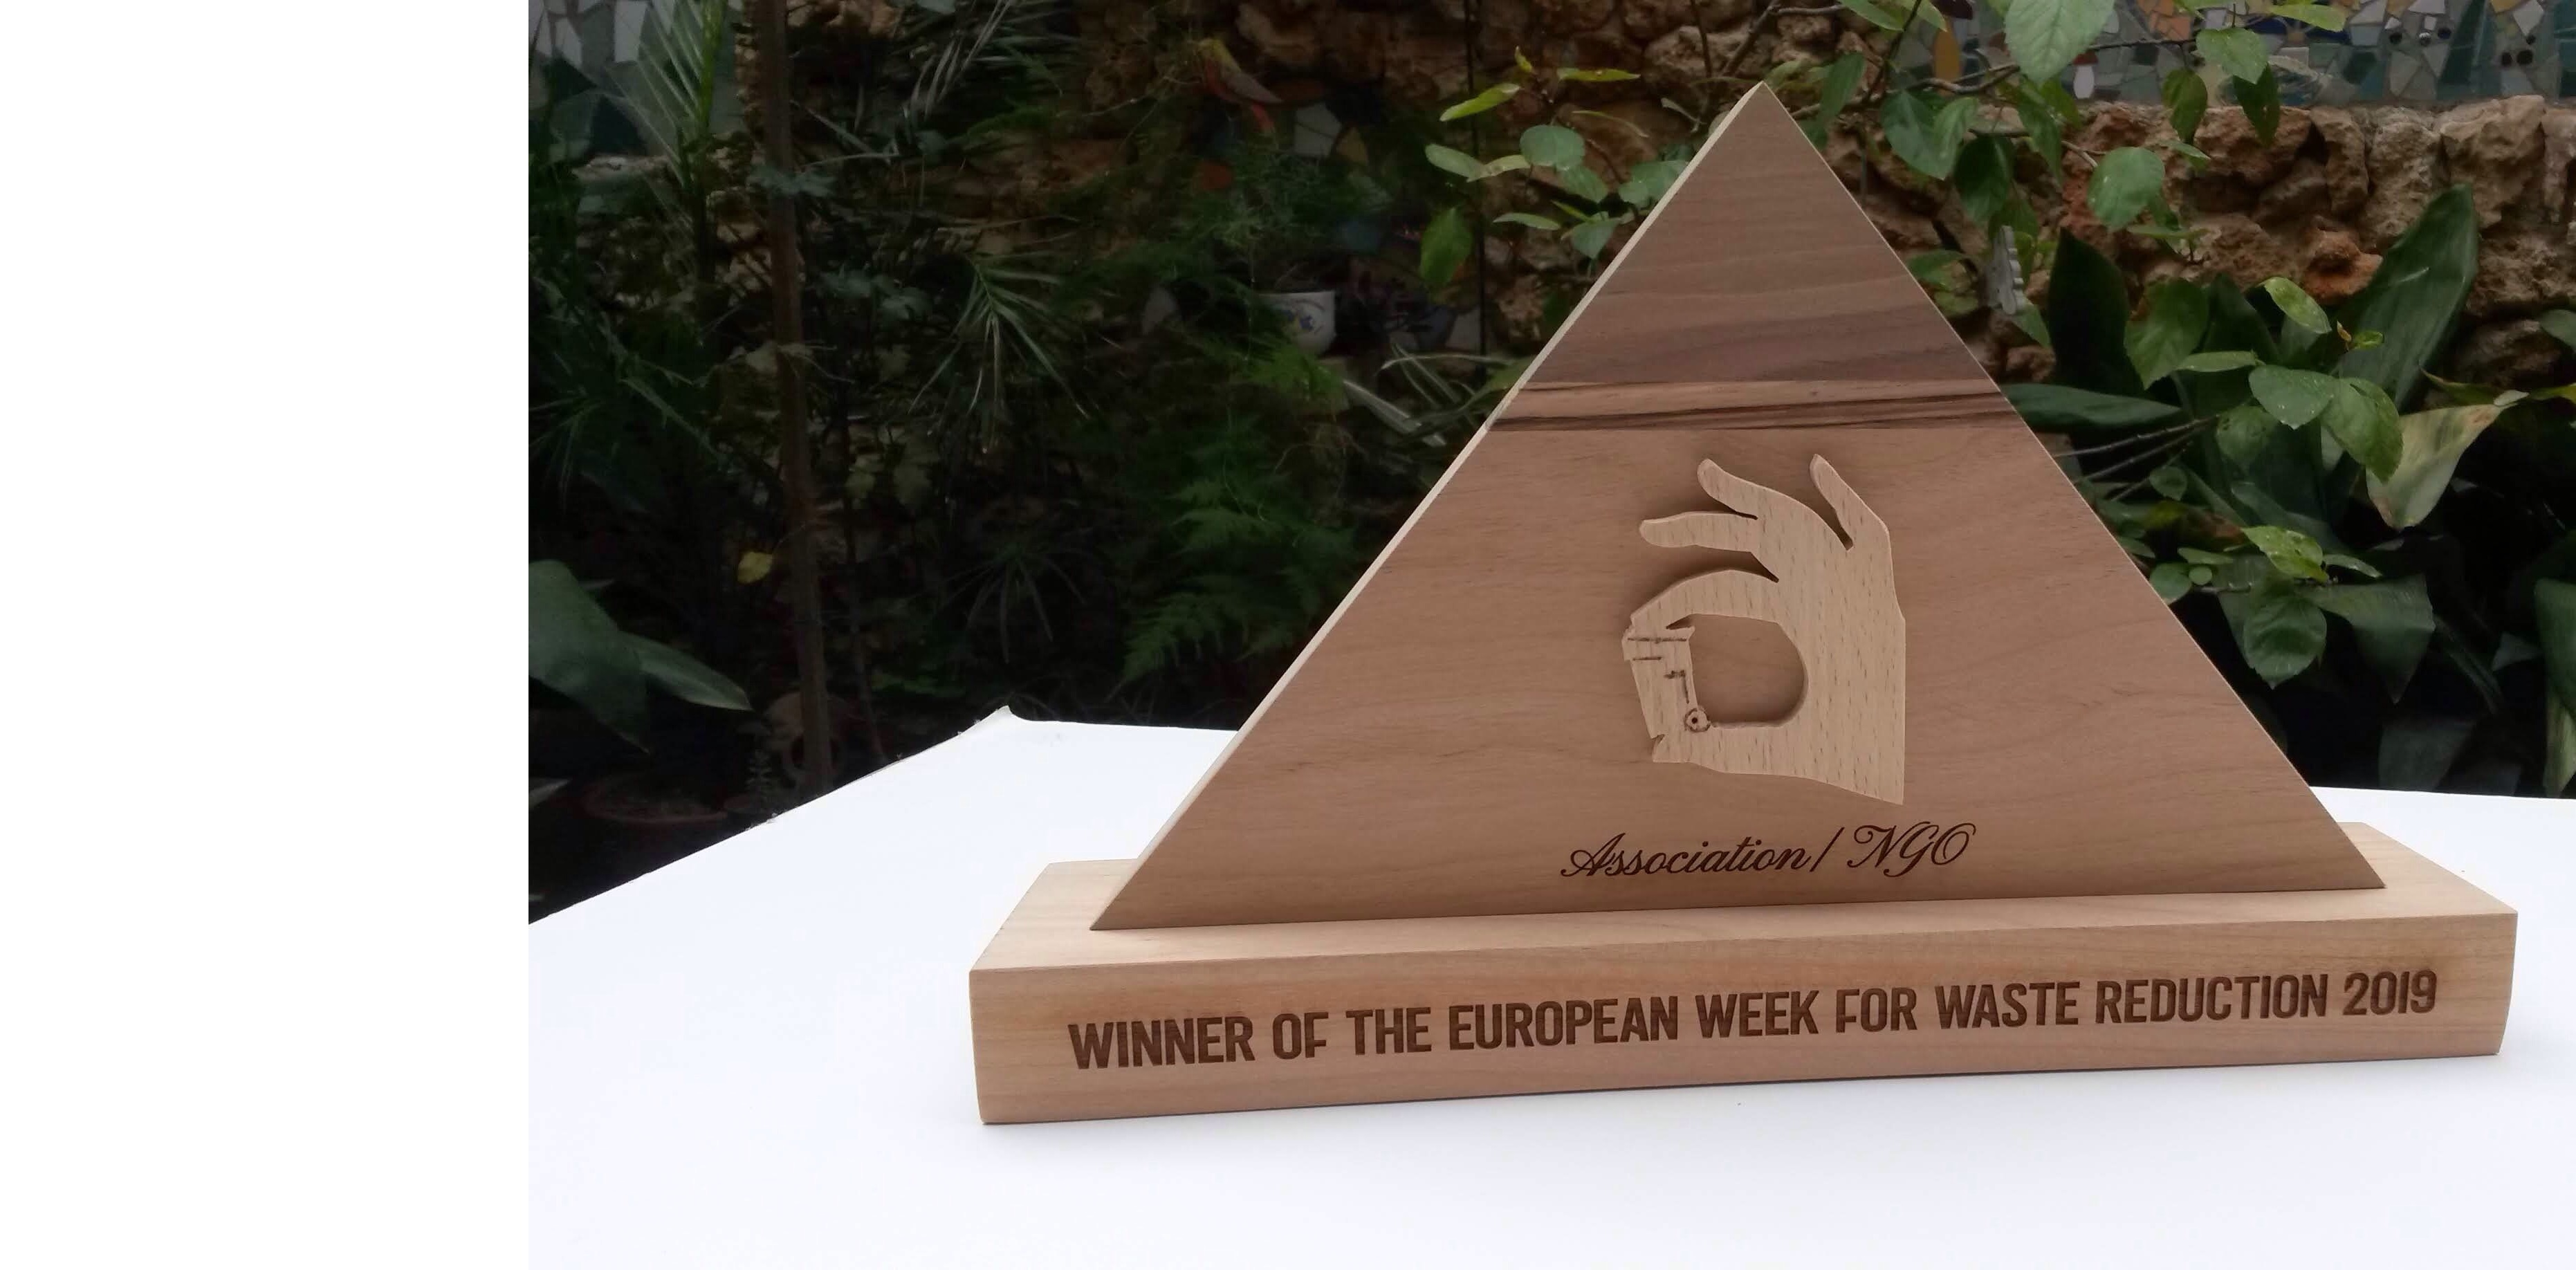 Who will be the EWWR 2019 prizewinners?